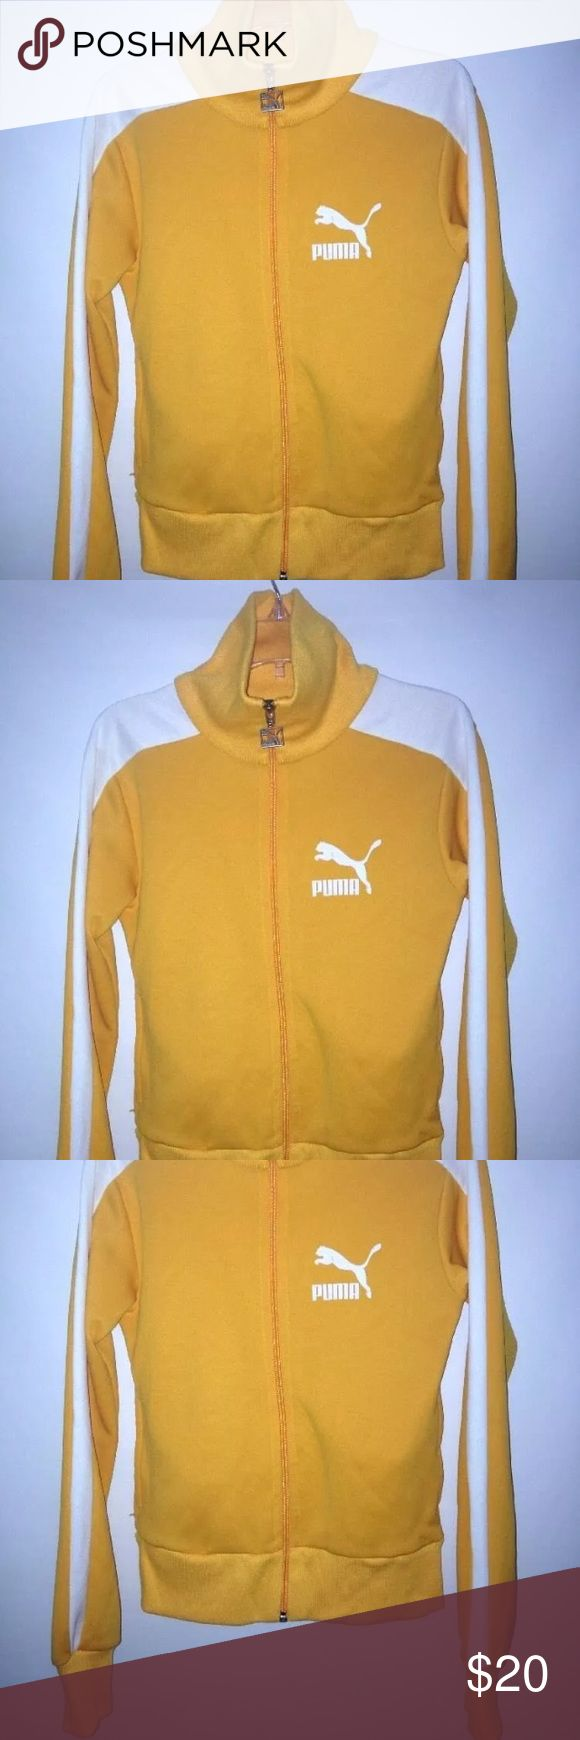 PUMA ZIP UP TRACK JACKET PUMA YELLOW ZIP UP TRACK JACKET  WOMEN SIZE XS  PIT TO PIT = 16''  ARMPIT TO END OF SLEEVE = 18''  LENGTH=22''  HAND POCKETS  EXCELLENT CONDITION, ONLY WORN A FEW TIMES  SEE PICTURES FOR DETAILS Puma Jackets & Coats